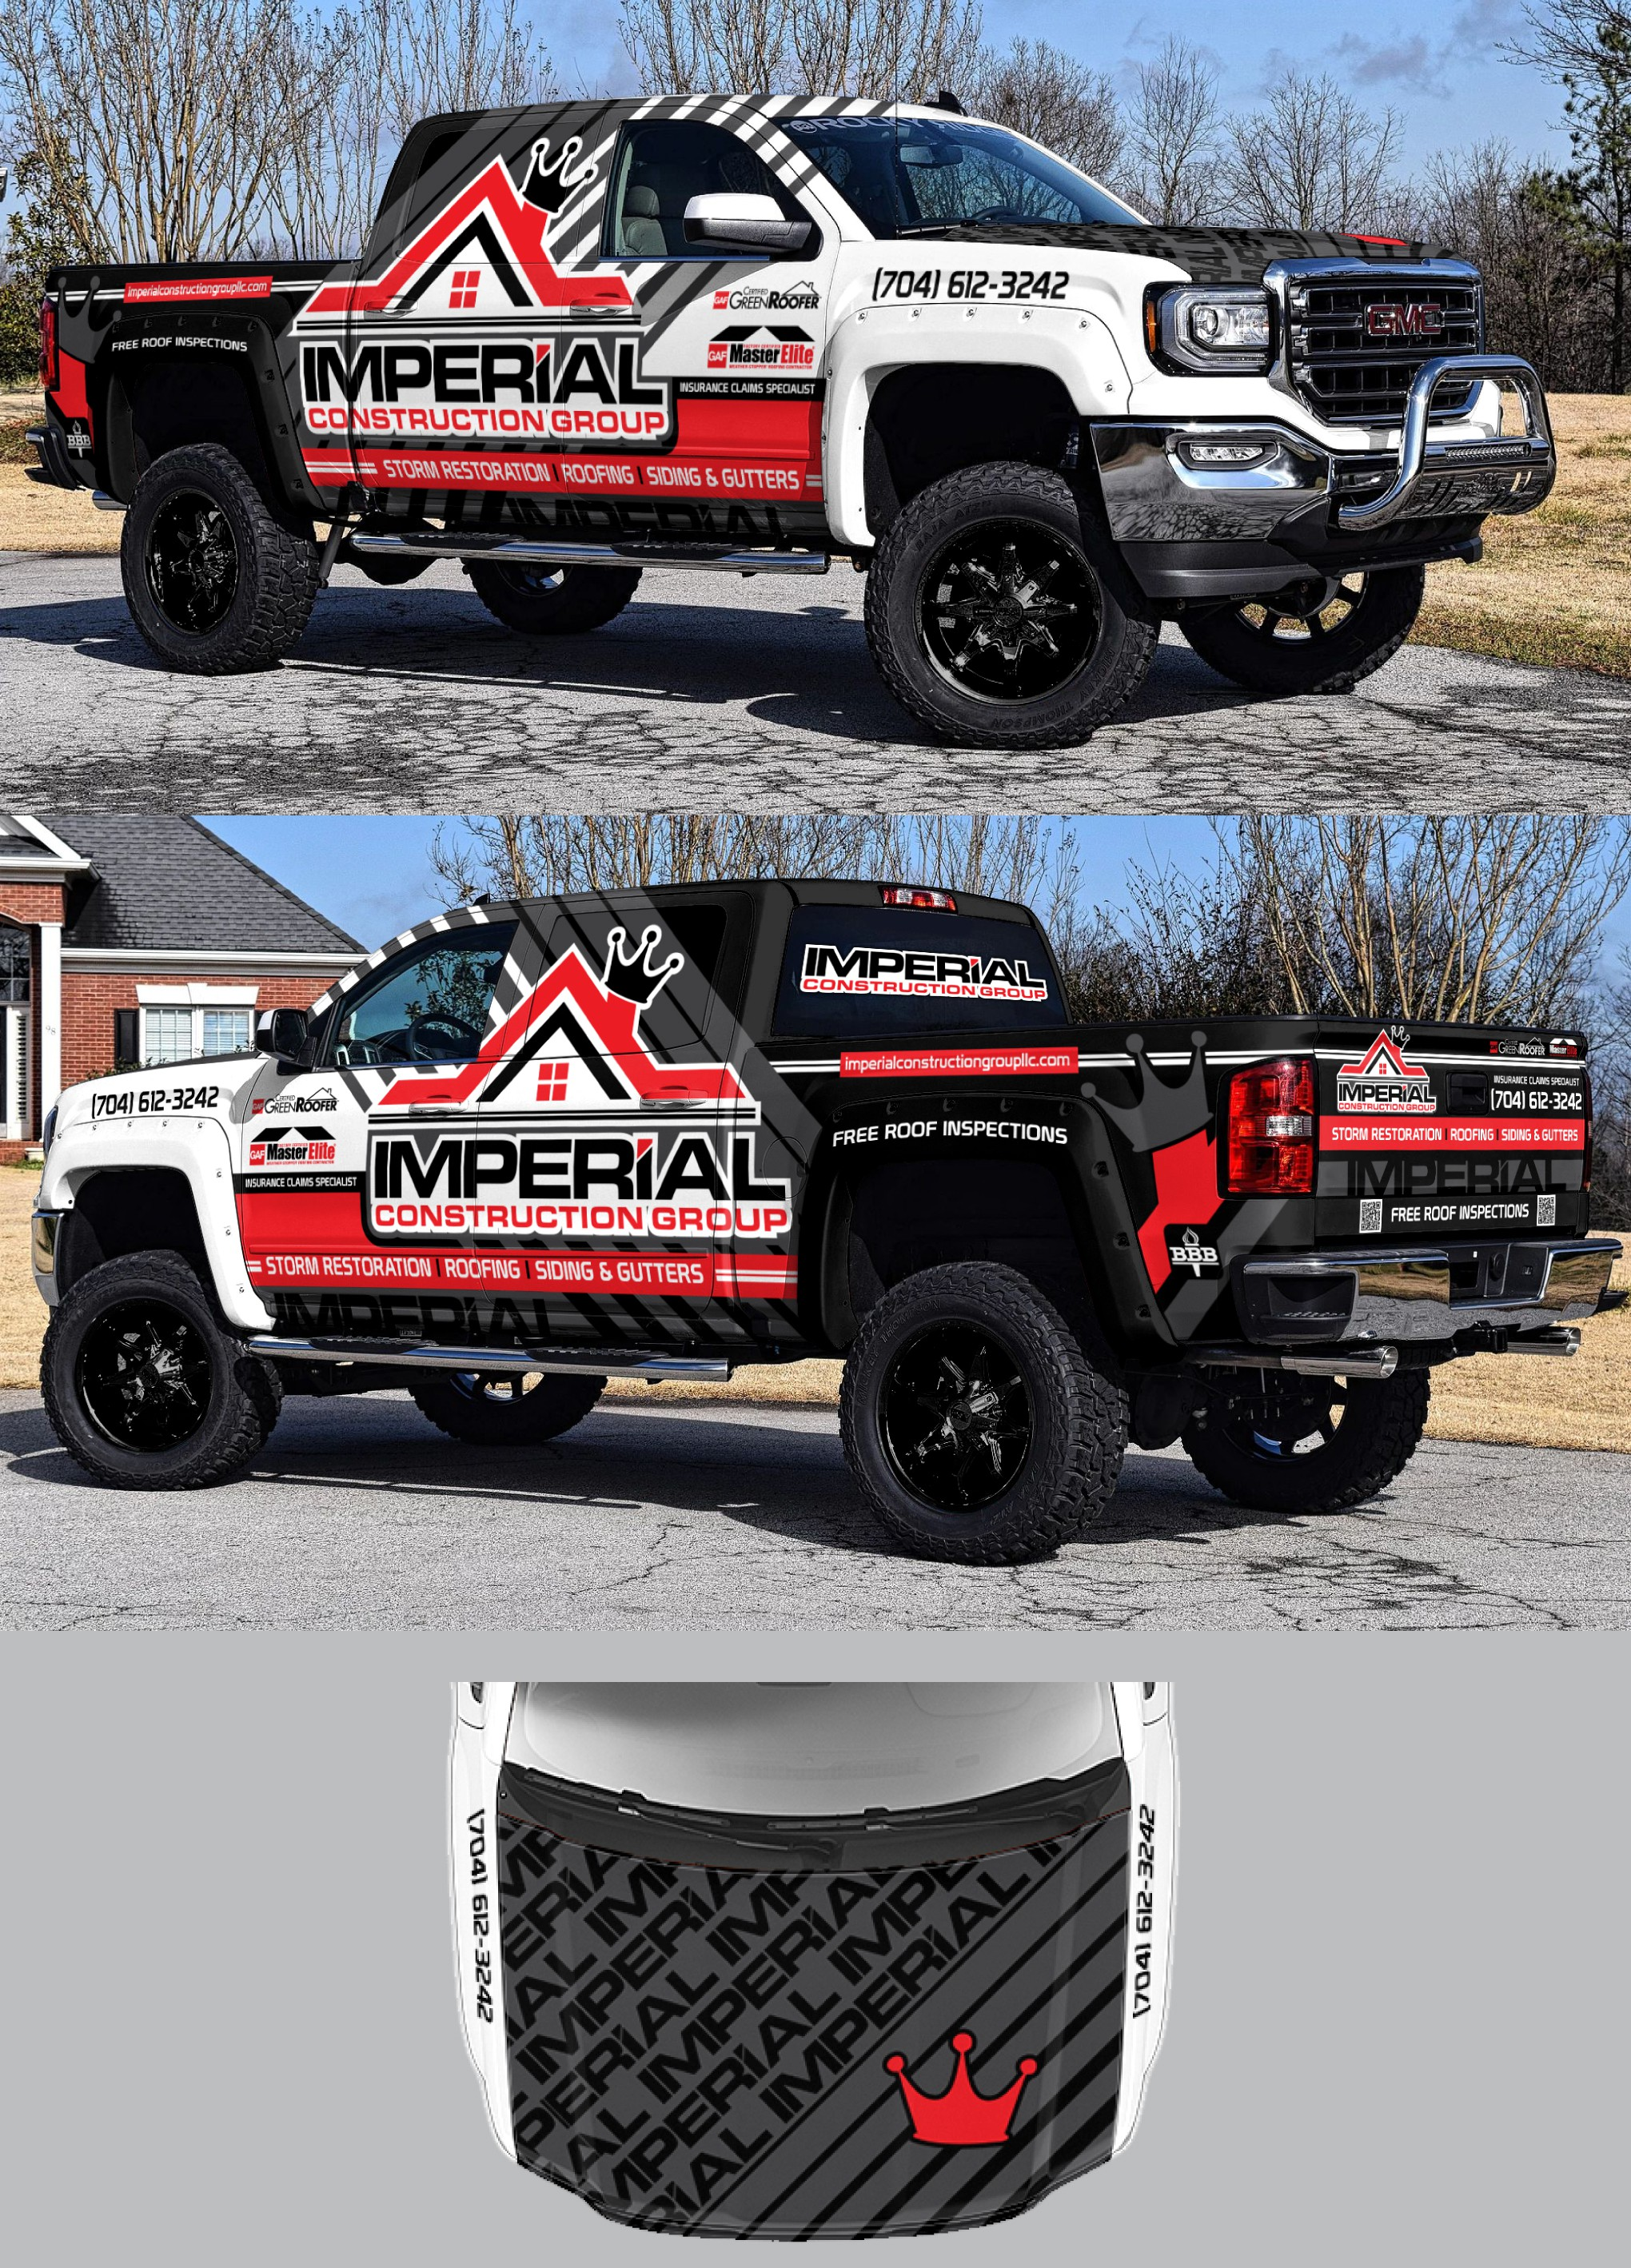 GUARANTEED: Modern Roofing Company Needs a Design for a Beautiful Truck!